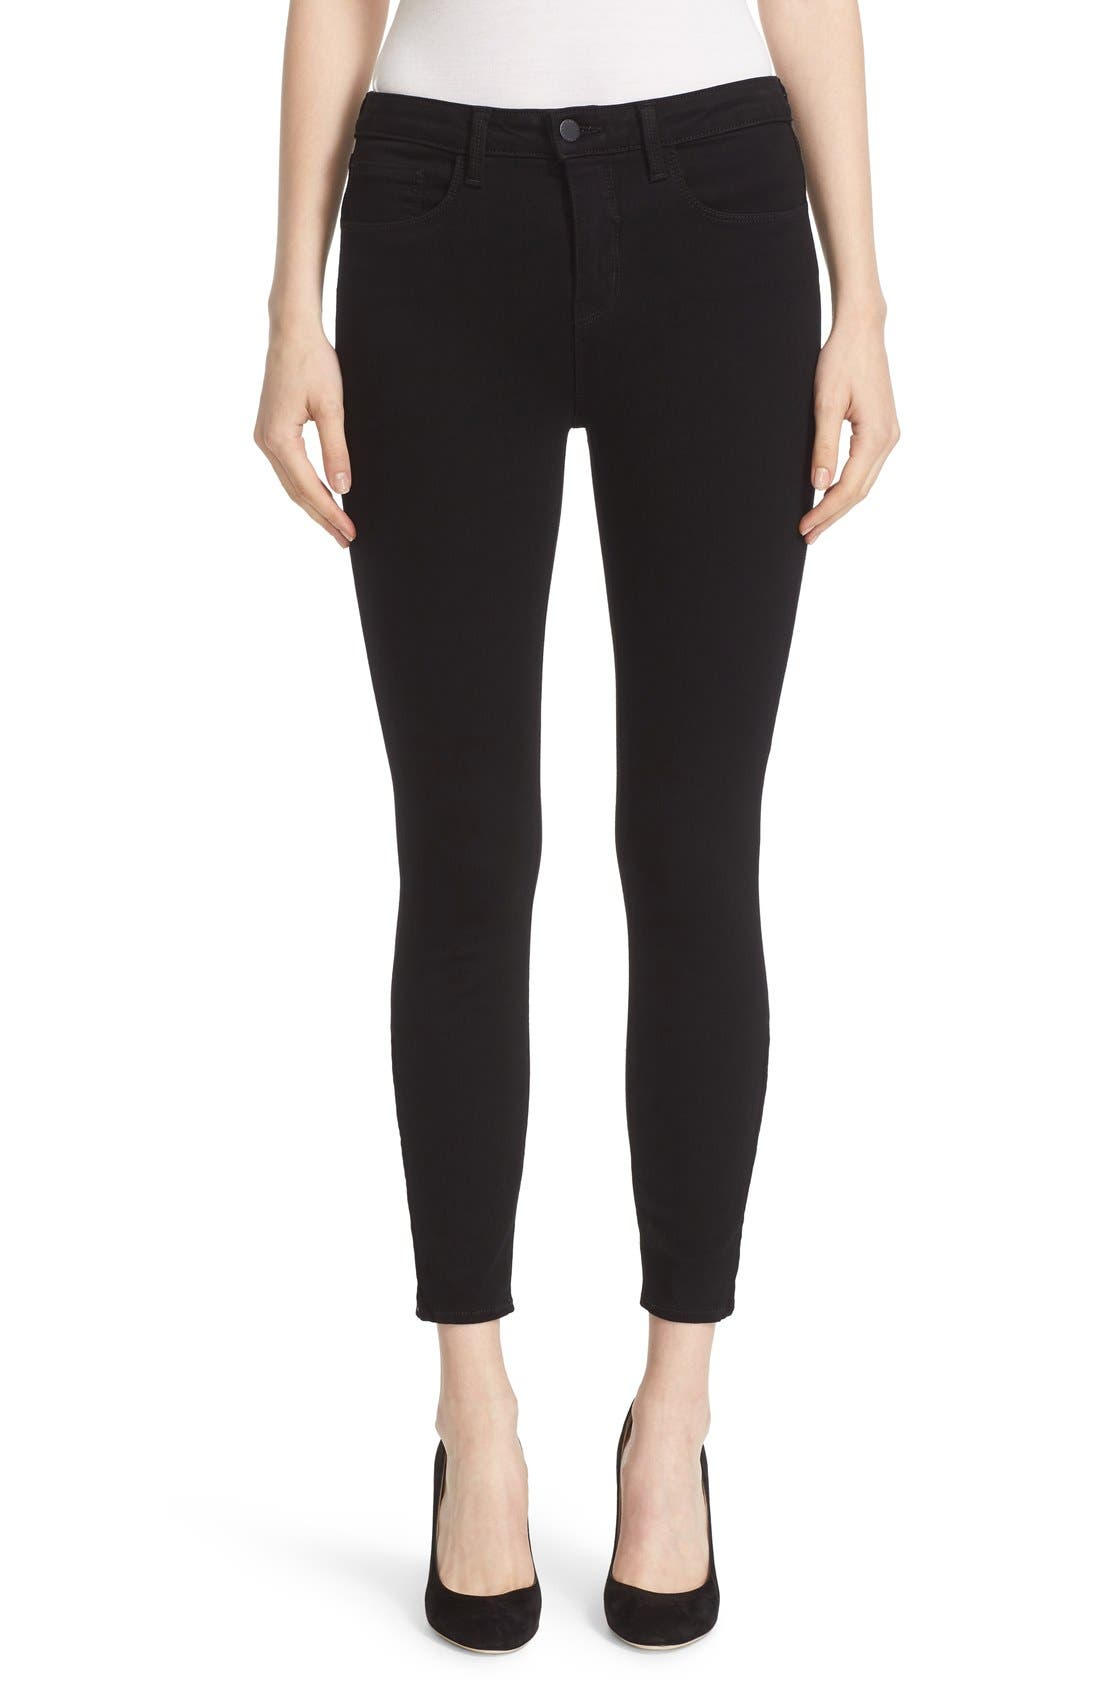 L'AGENCE 'Andrea' Ankle Zip Skinny Jeans